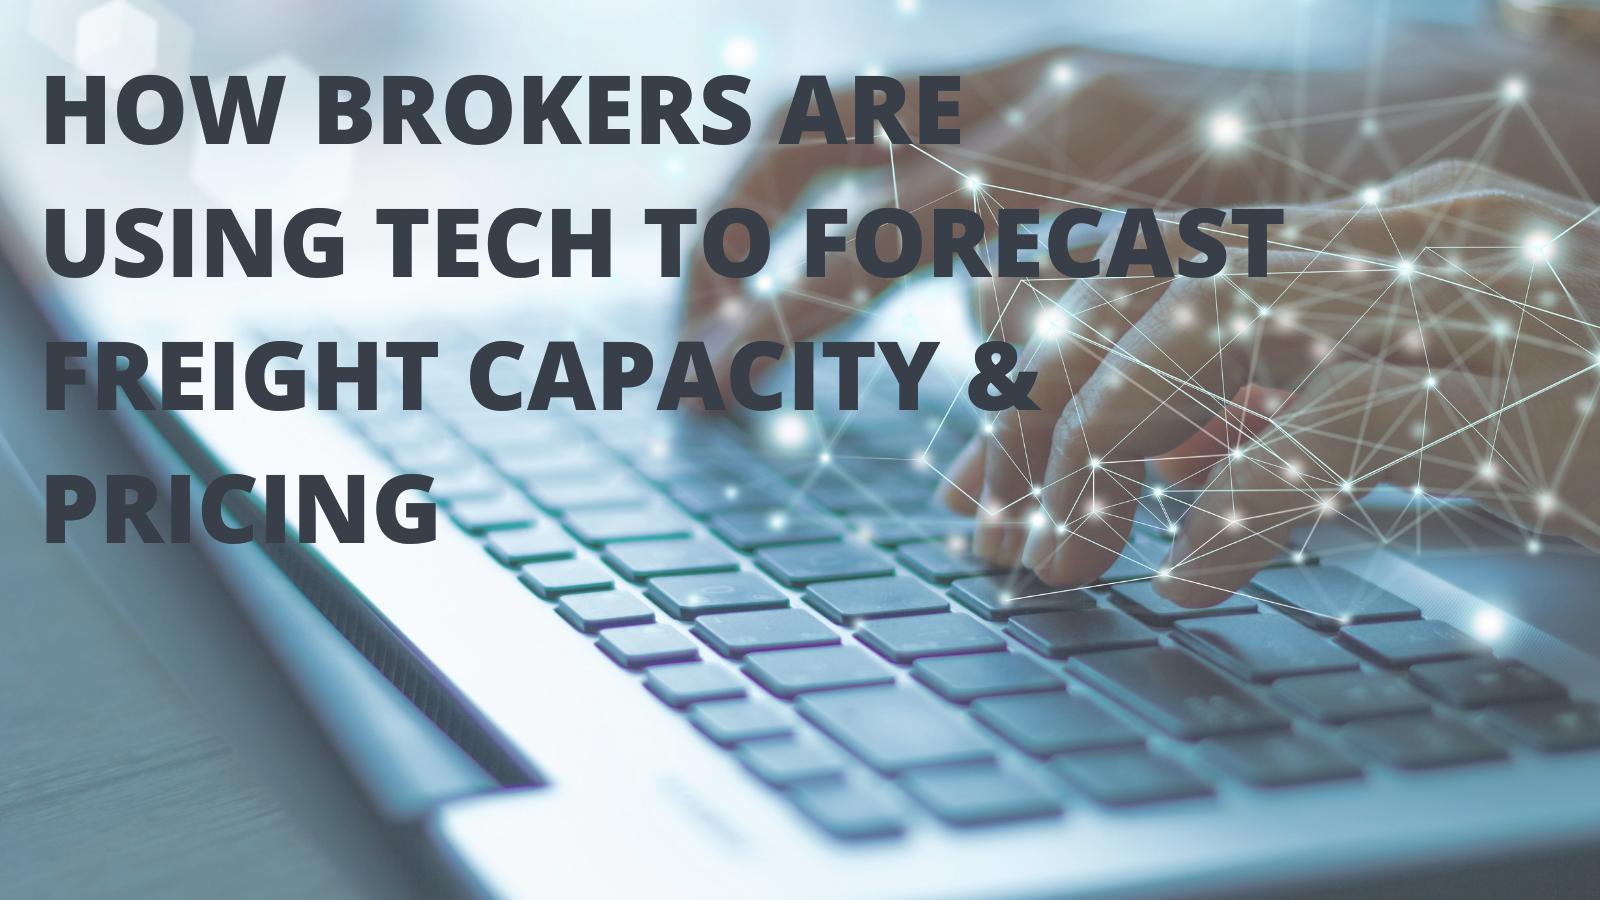 How Brokers Are Using Tech To Forecast Freight Capacity & Pricing